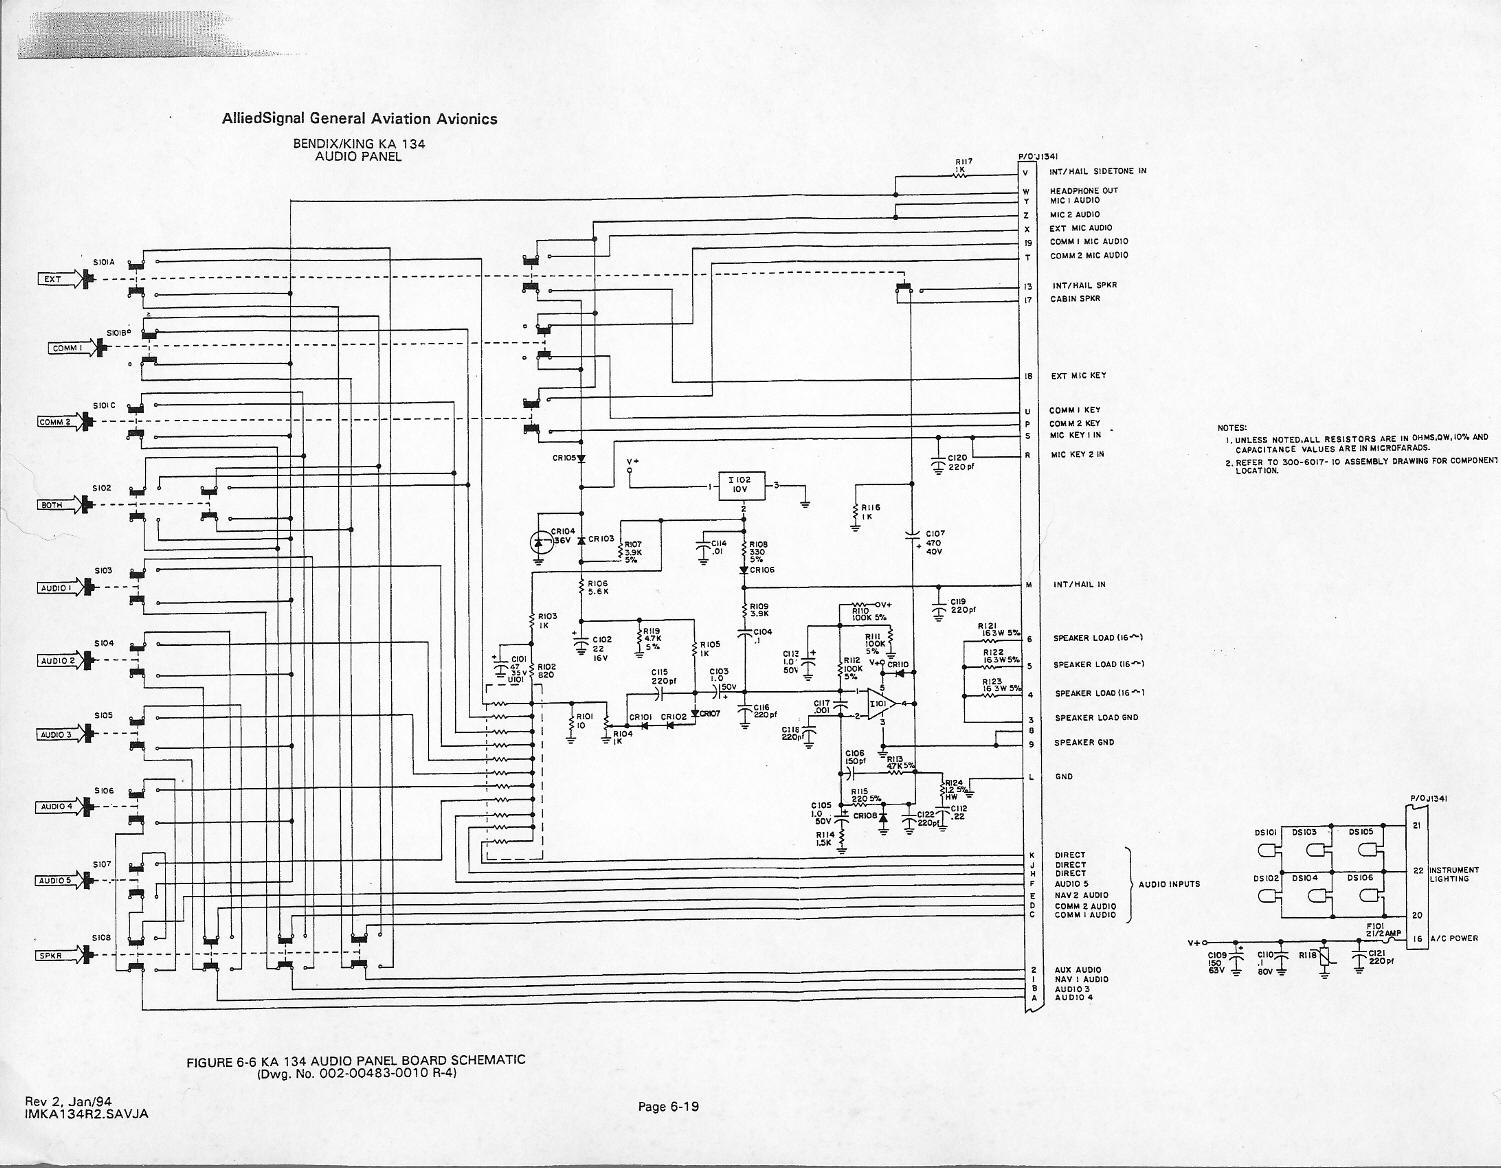 ka134_r4 first flight prep cessna 300 nav comm wiring diagram at reclaimingppi.co